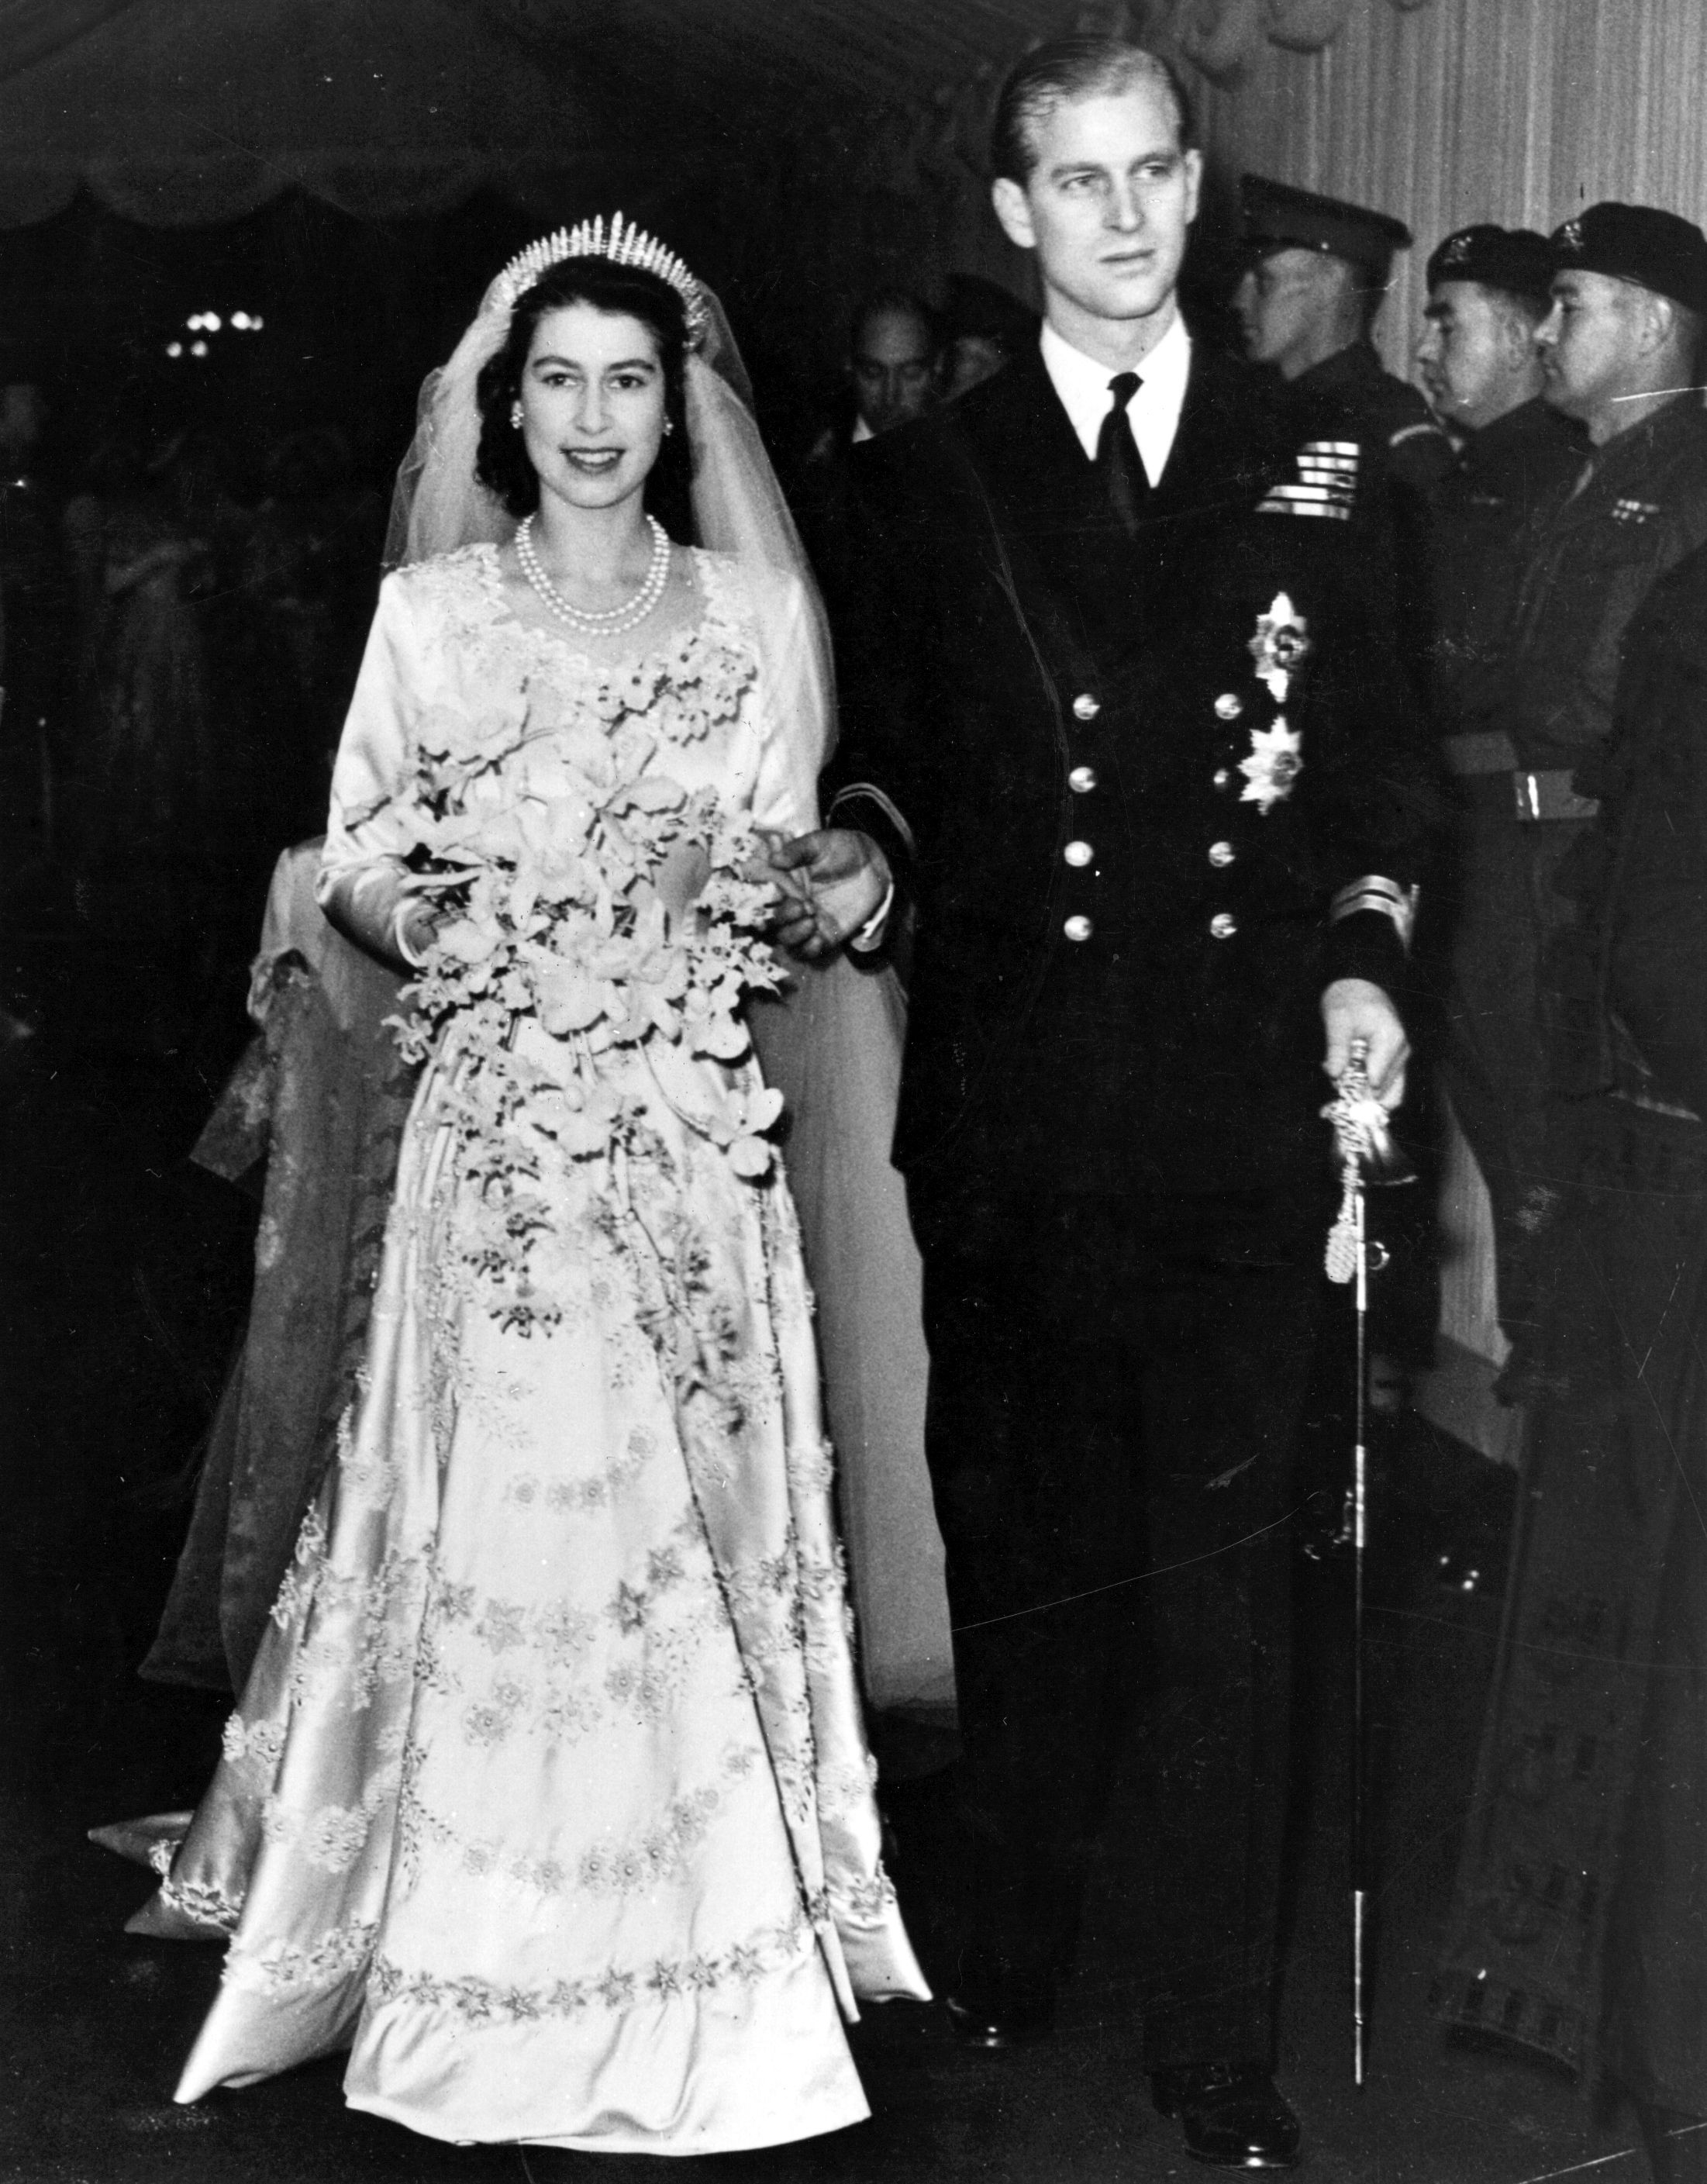 Queen Elizabeth's Wedding - Queen Elizabeth II Wedding to Prince